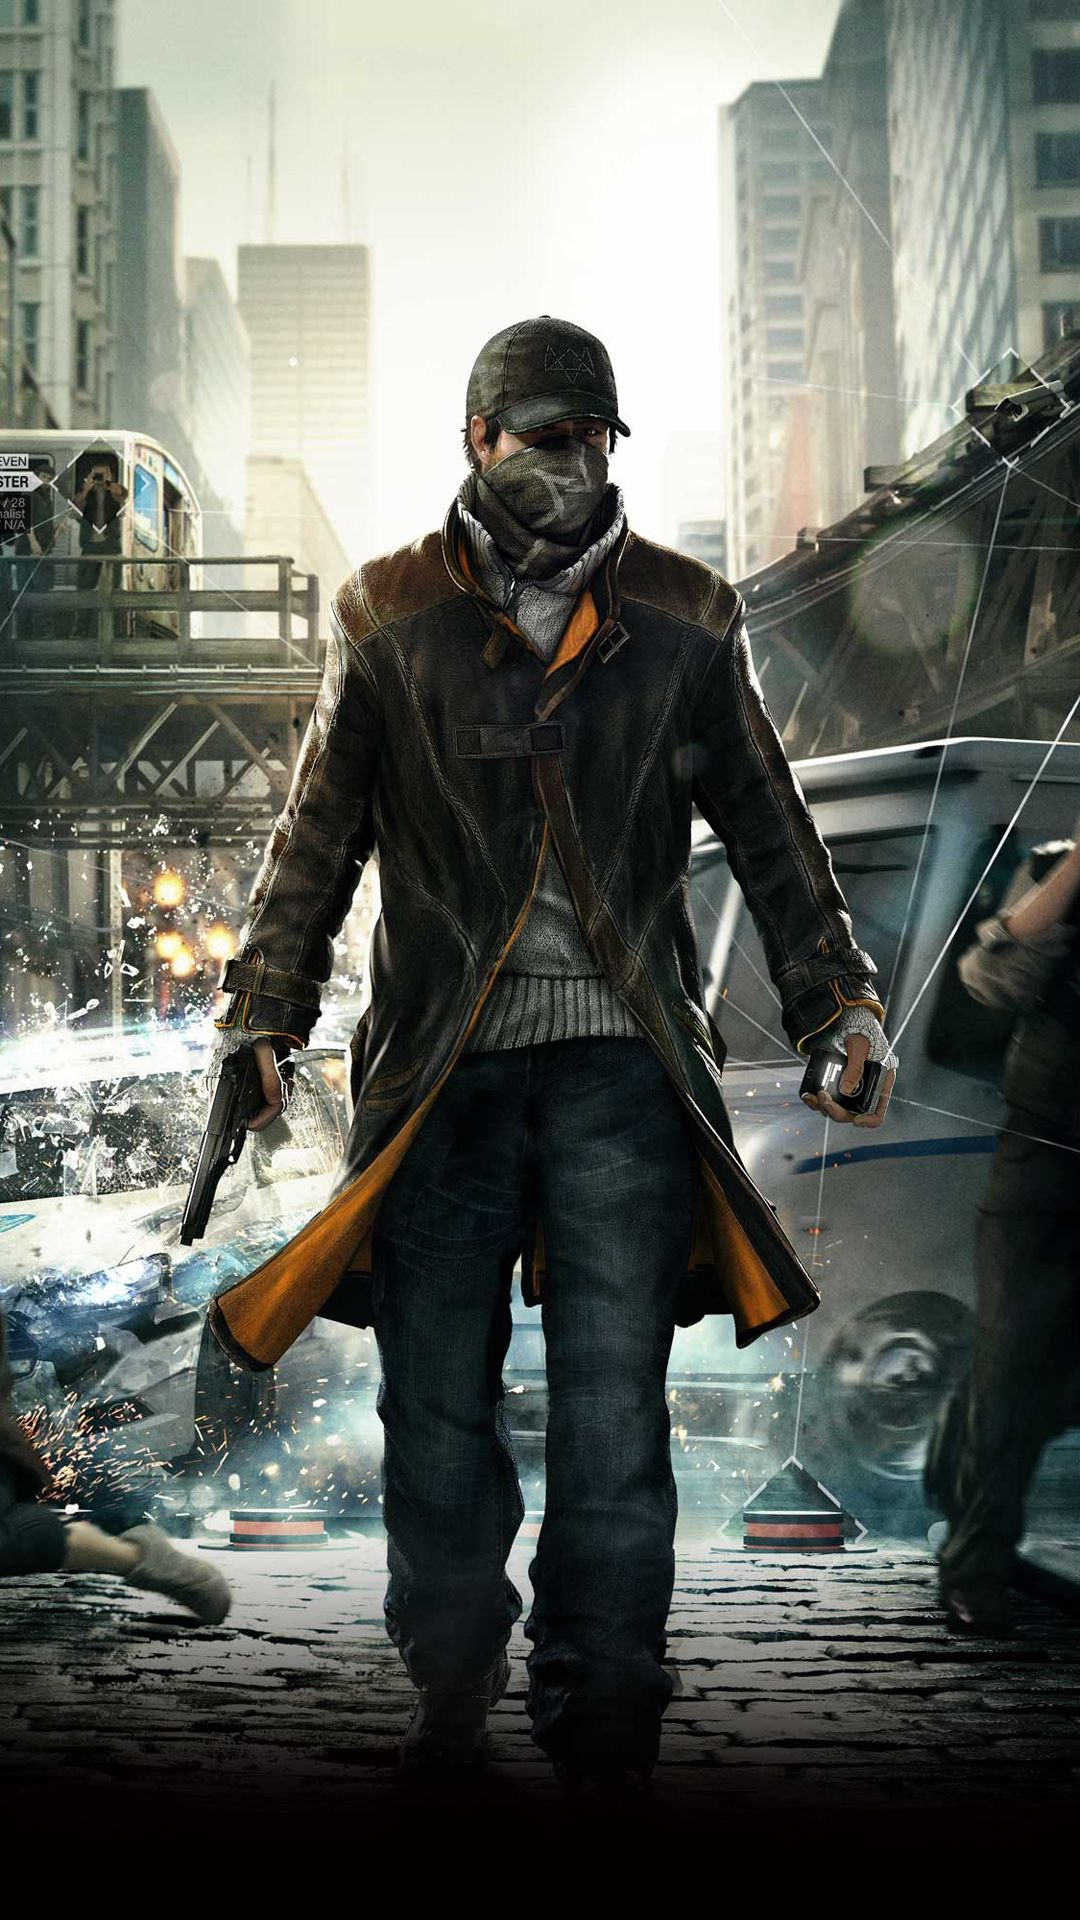 Wallpaper iphone watch dogs - For Geeks Watch Dogs Aiden Pearce Black